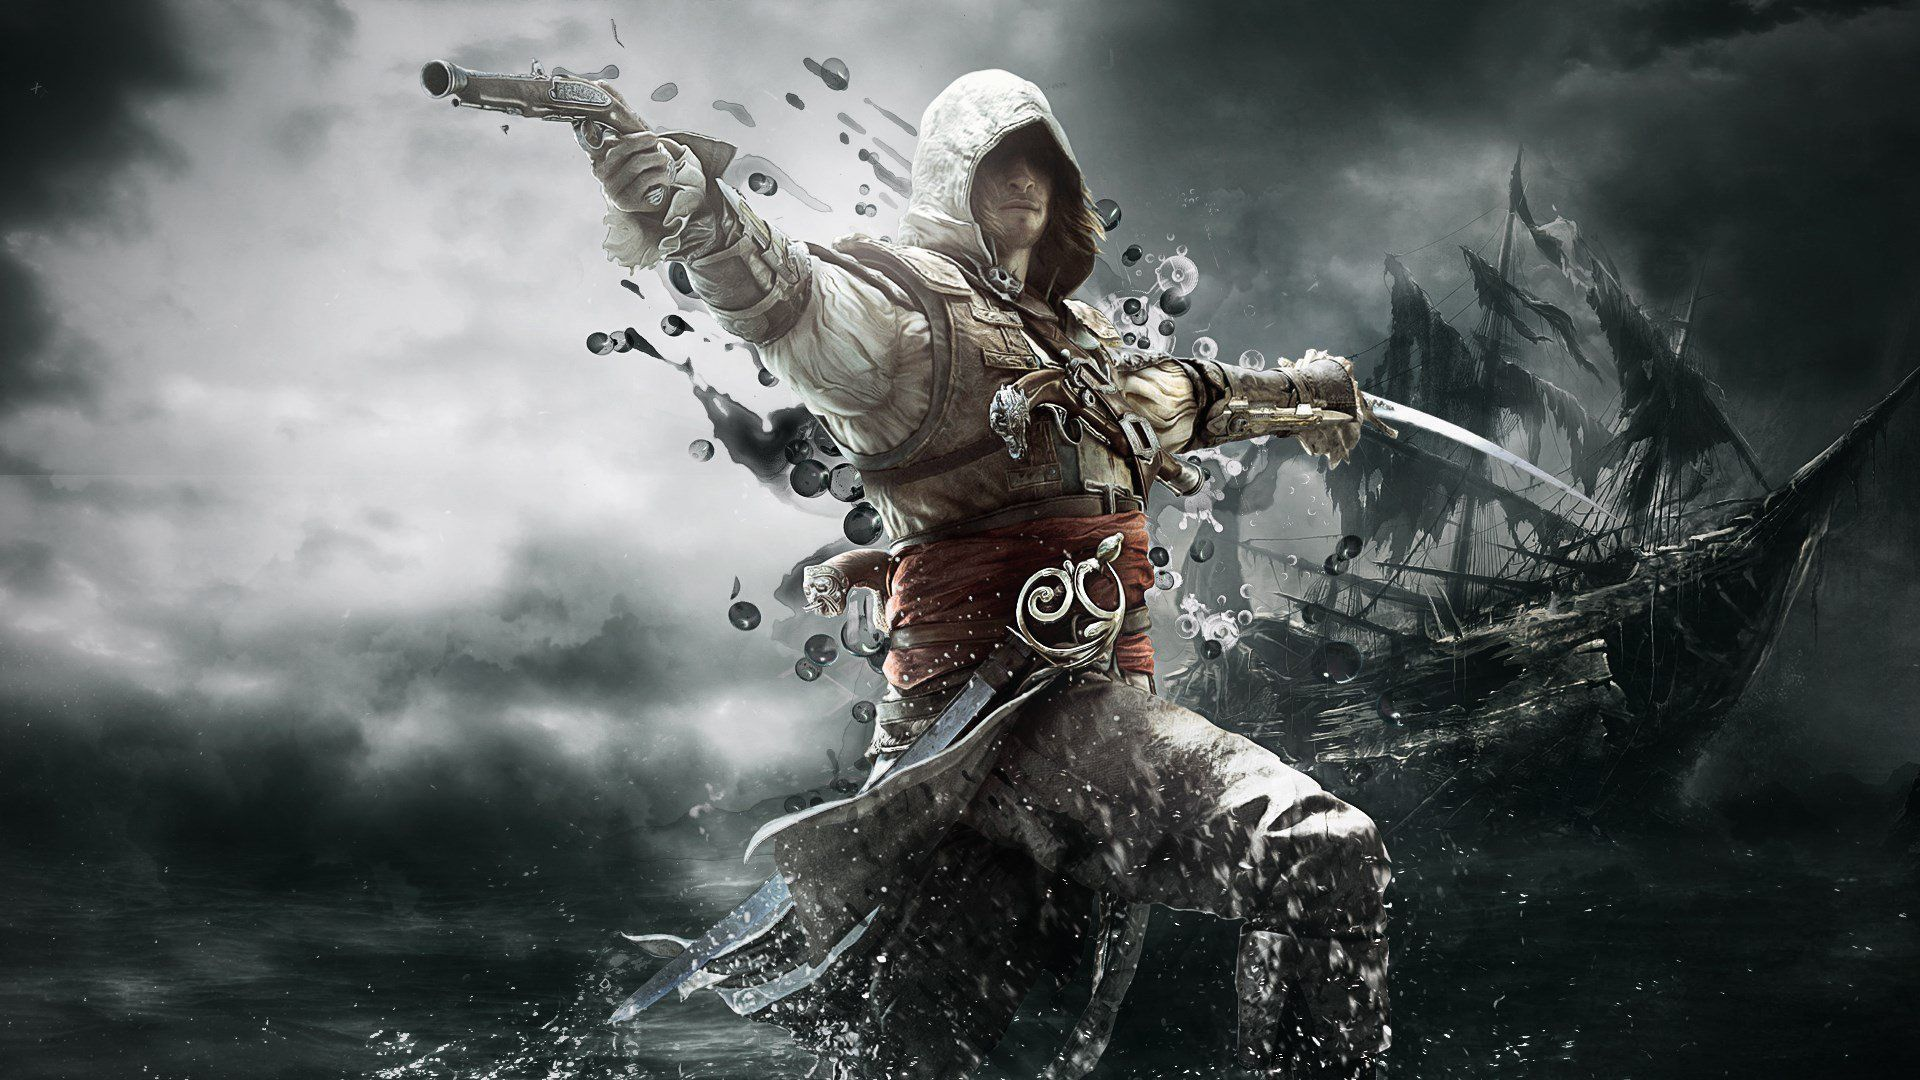 Assassin S Creed 1920x1080 Need Iphone 6s Plus